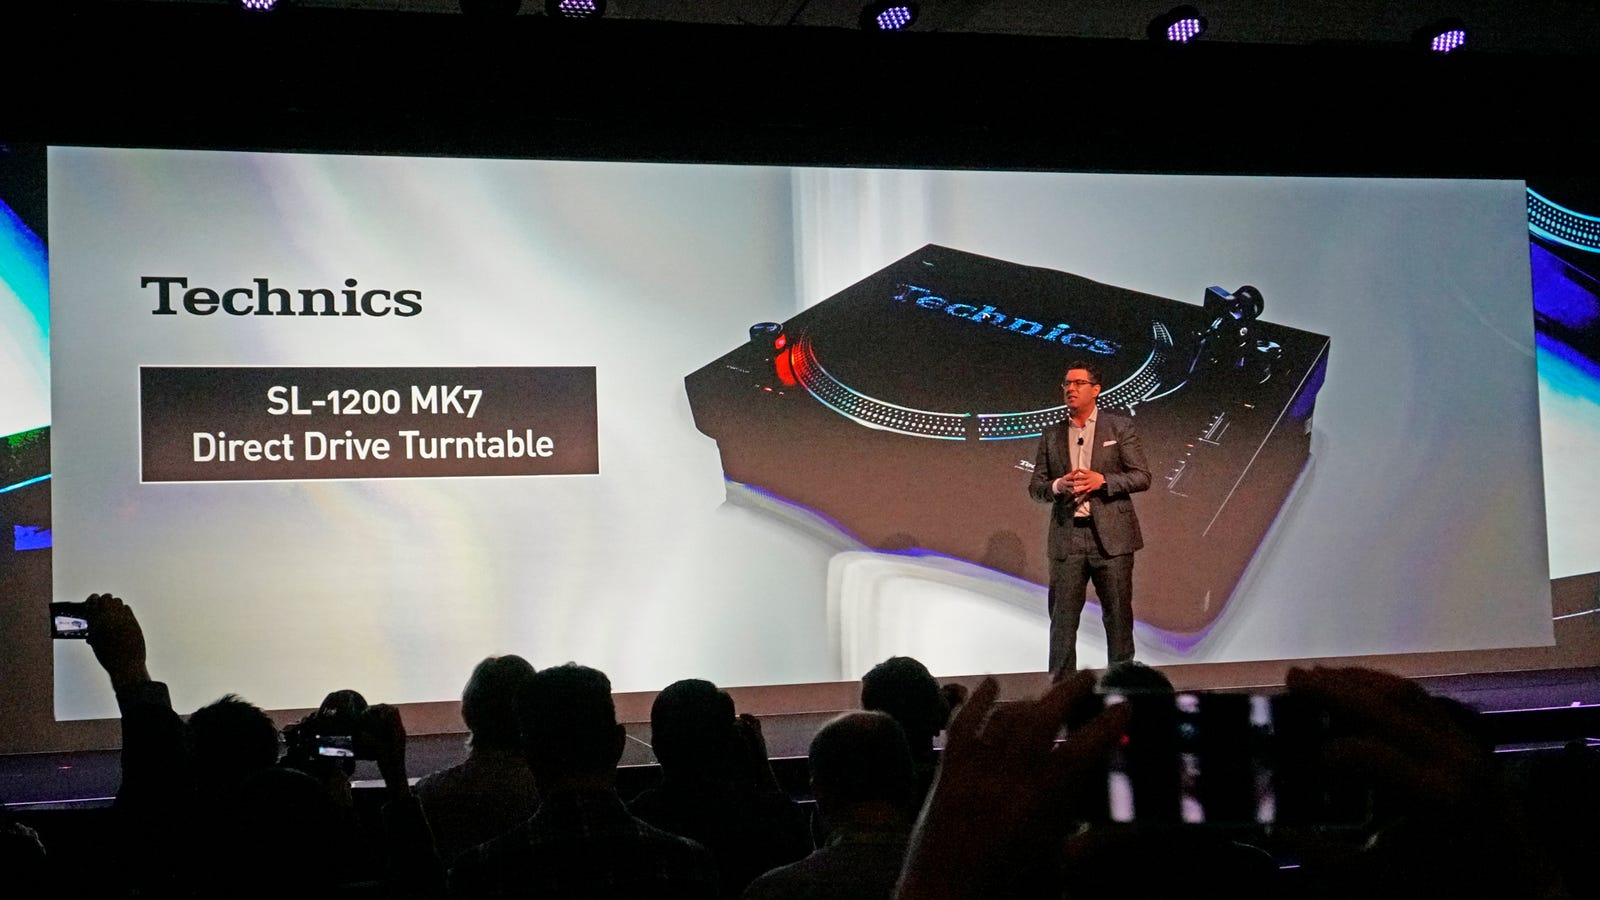 Panasonic Returns the Technics 1200 Turntable to Its DJ Roots With the new MK7